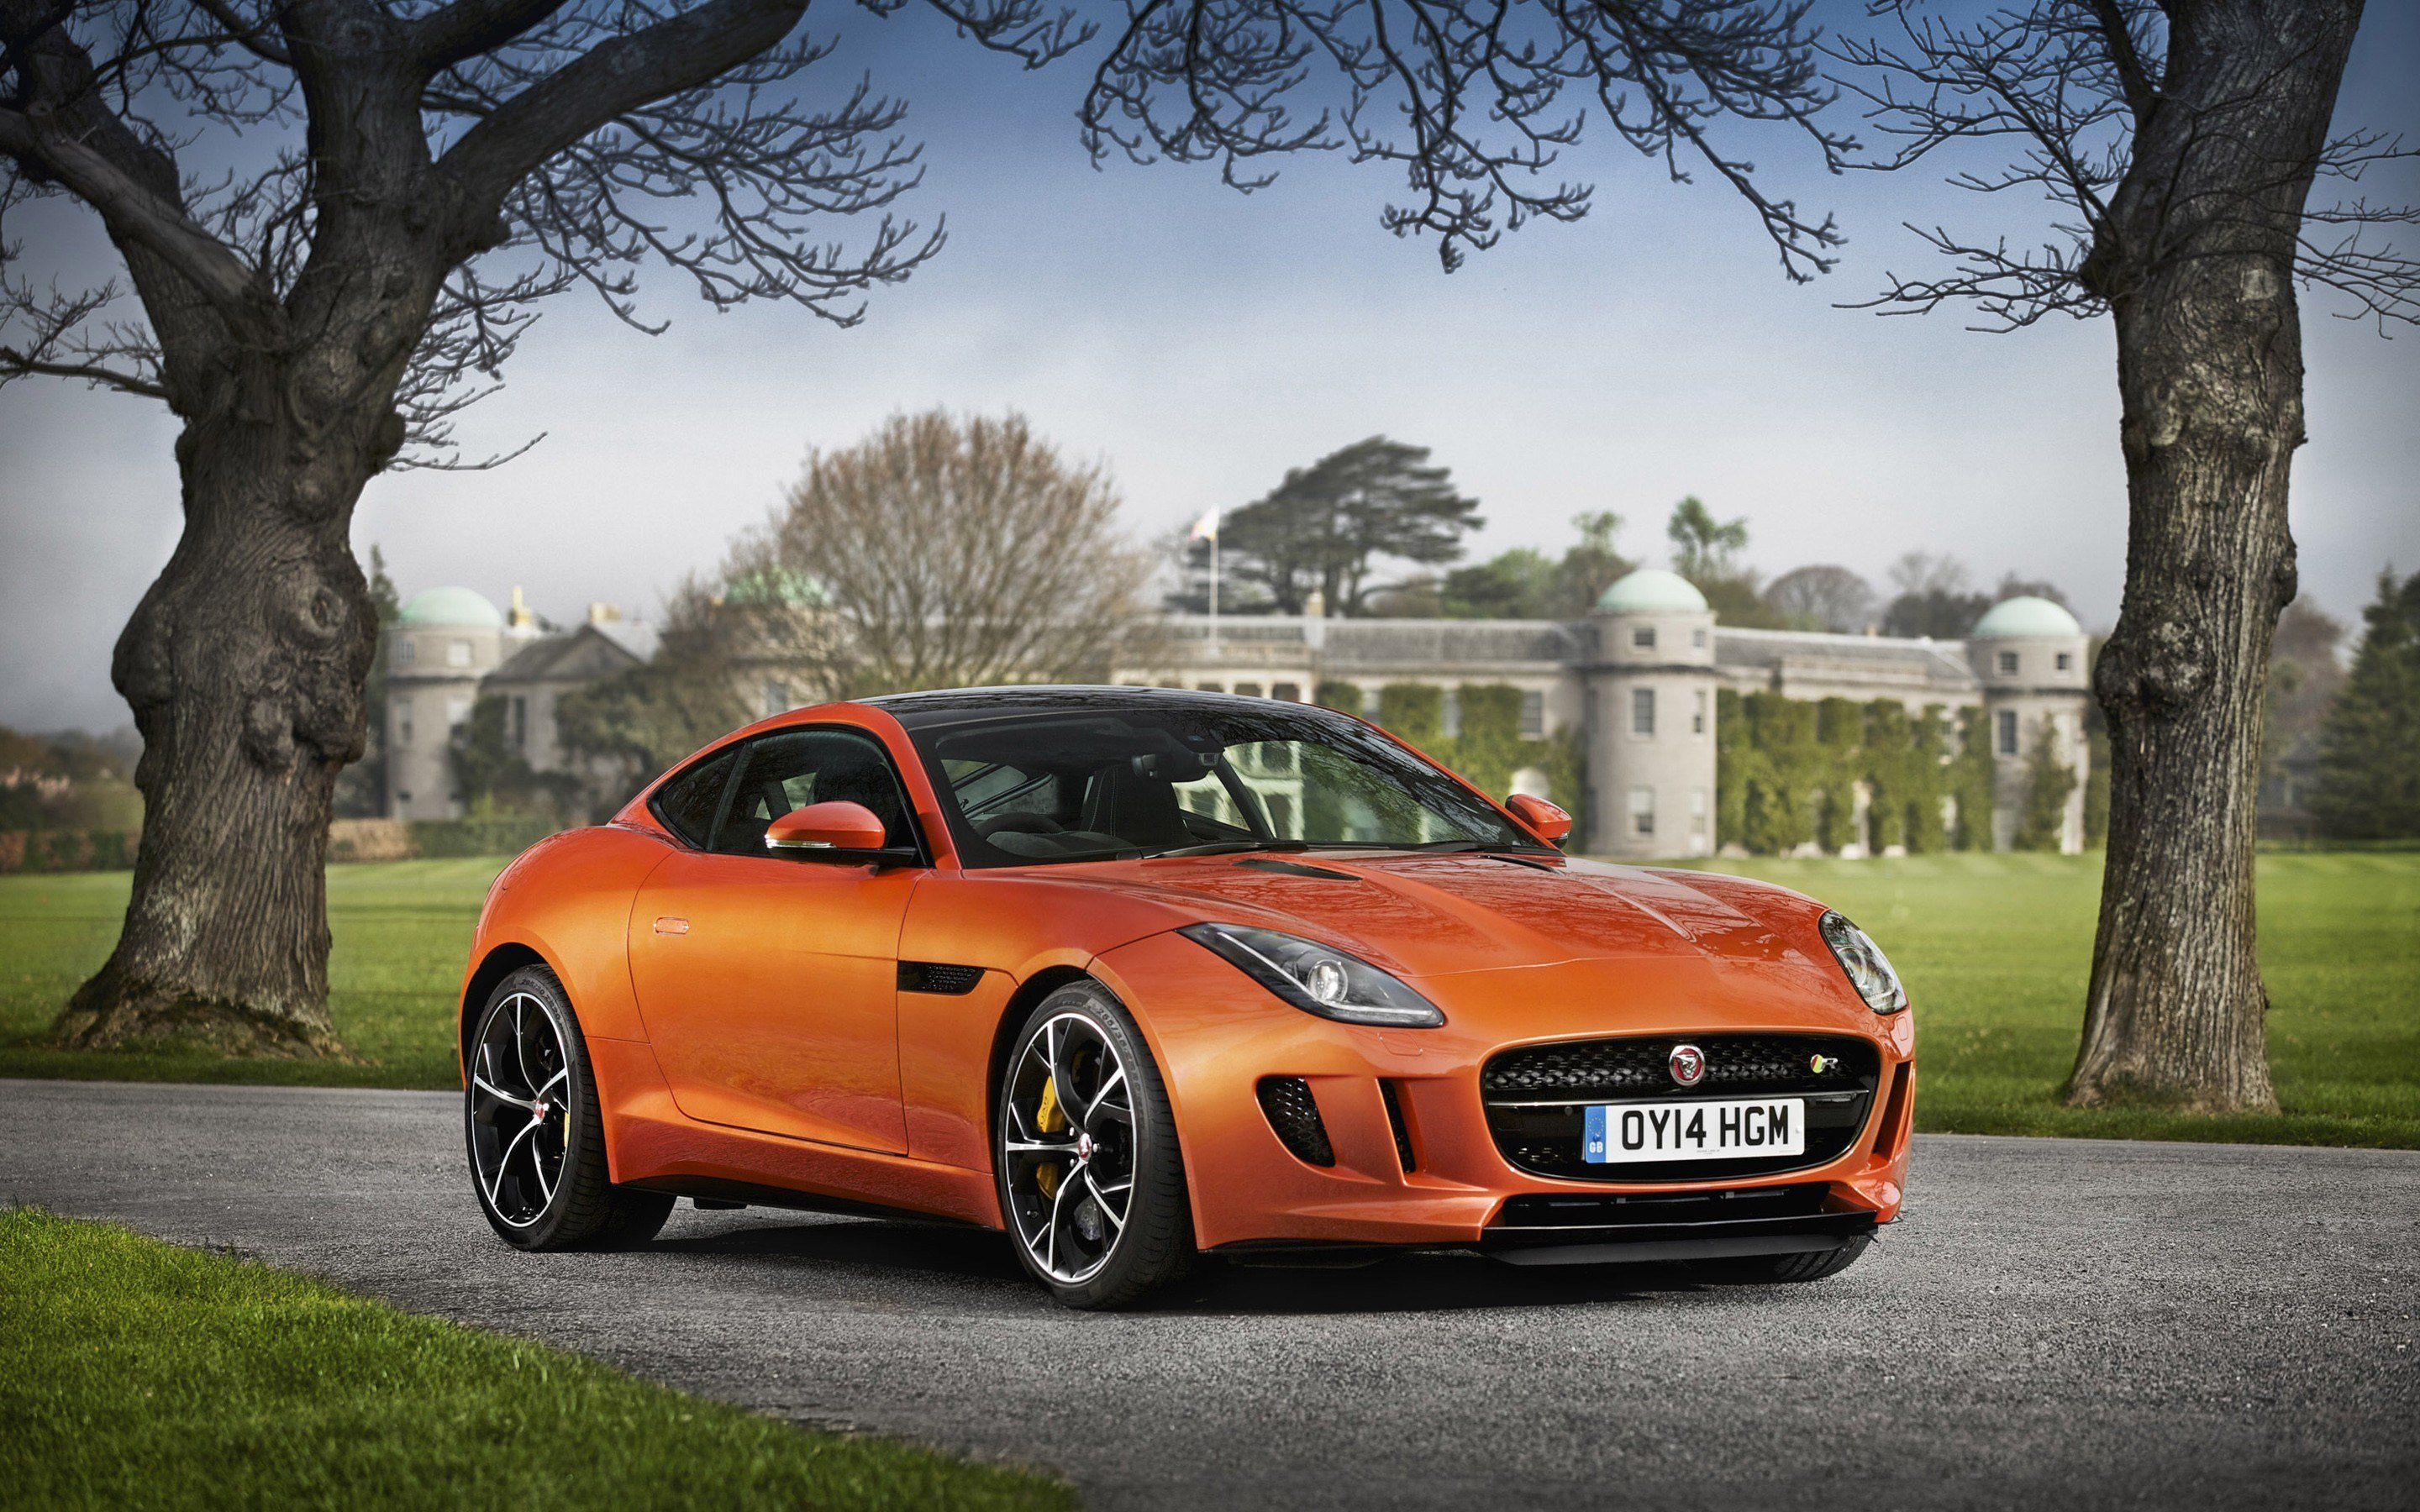 New 2014 Jaguar F Type R Coupe 7 Wallpaper Hd Car Wallpapers On This Month